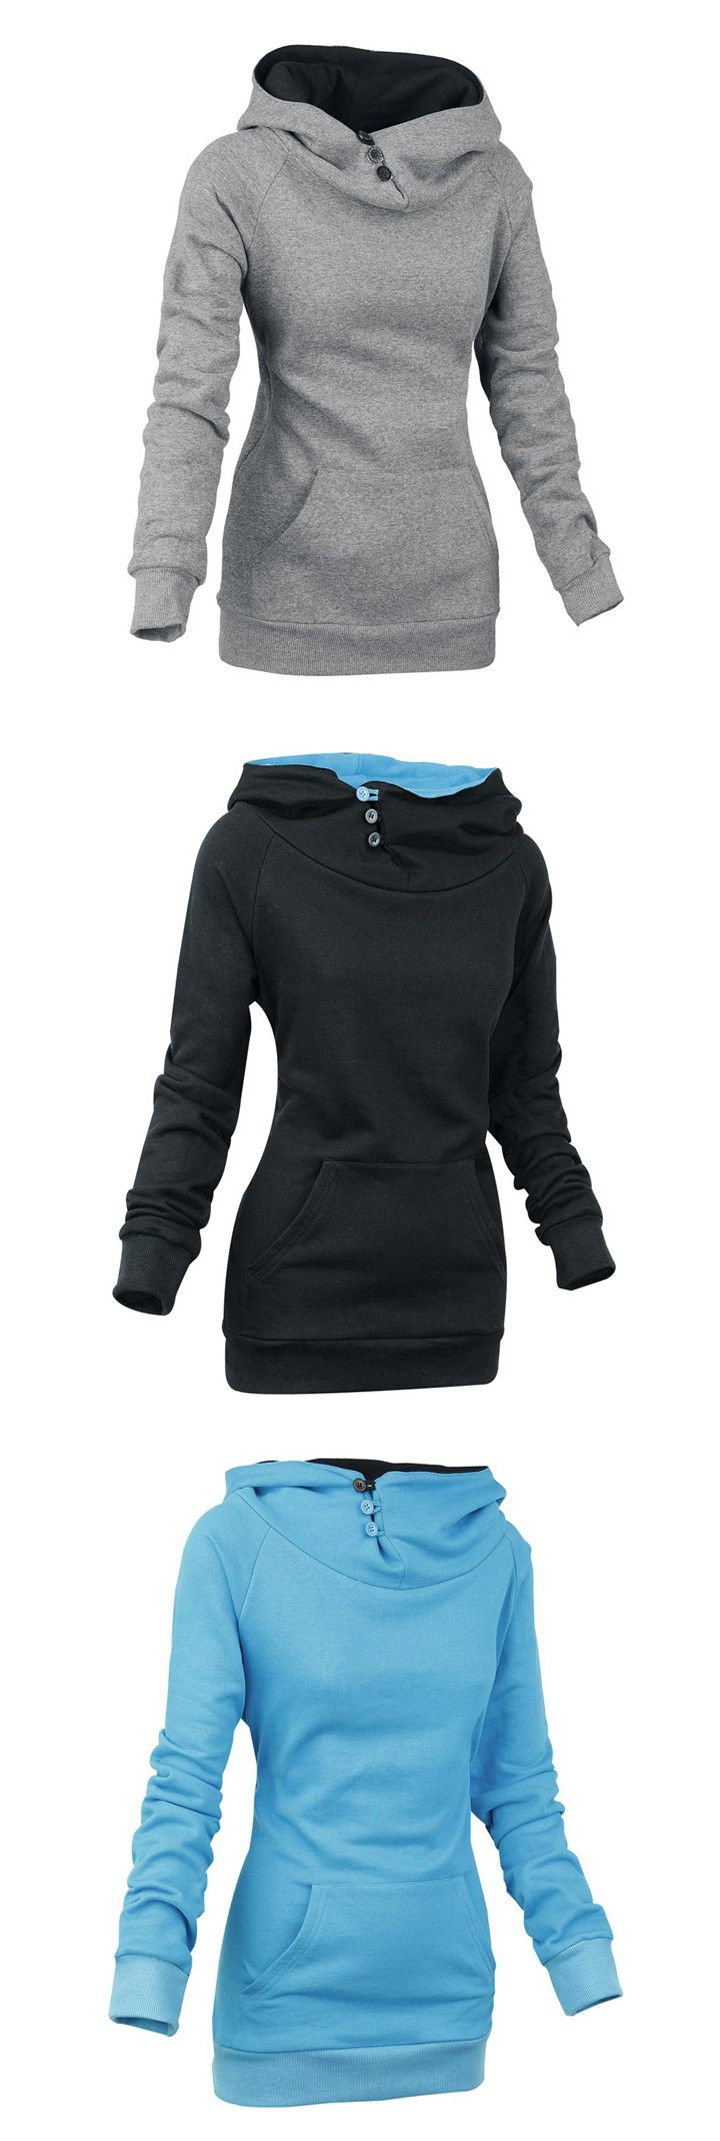 Not only the hoodies are cute but so much more on the site and the clearance deals are awesome!!